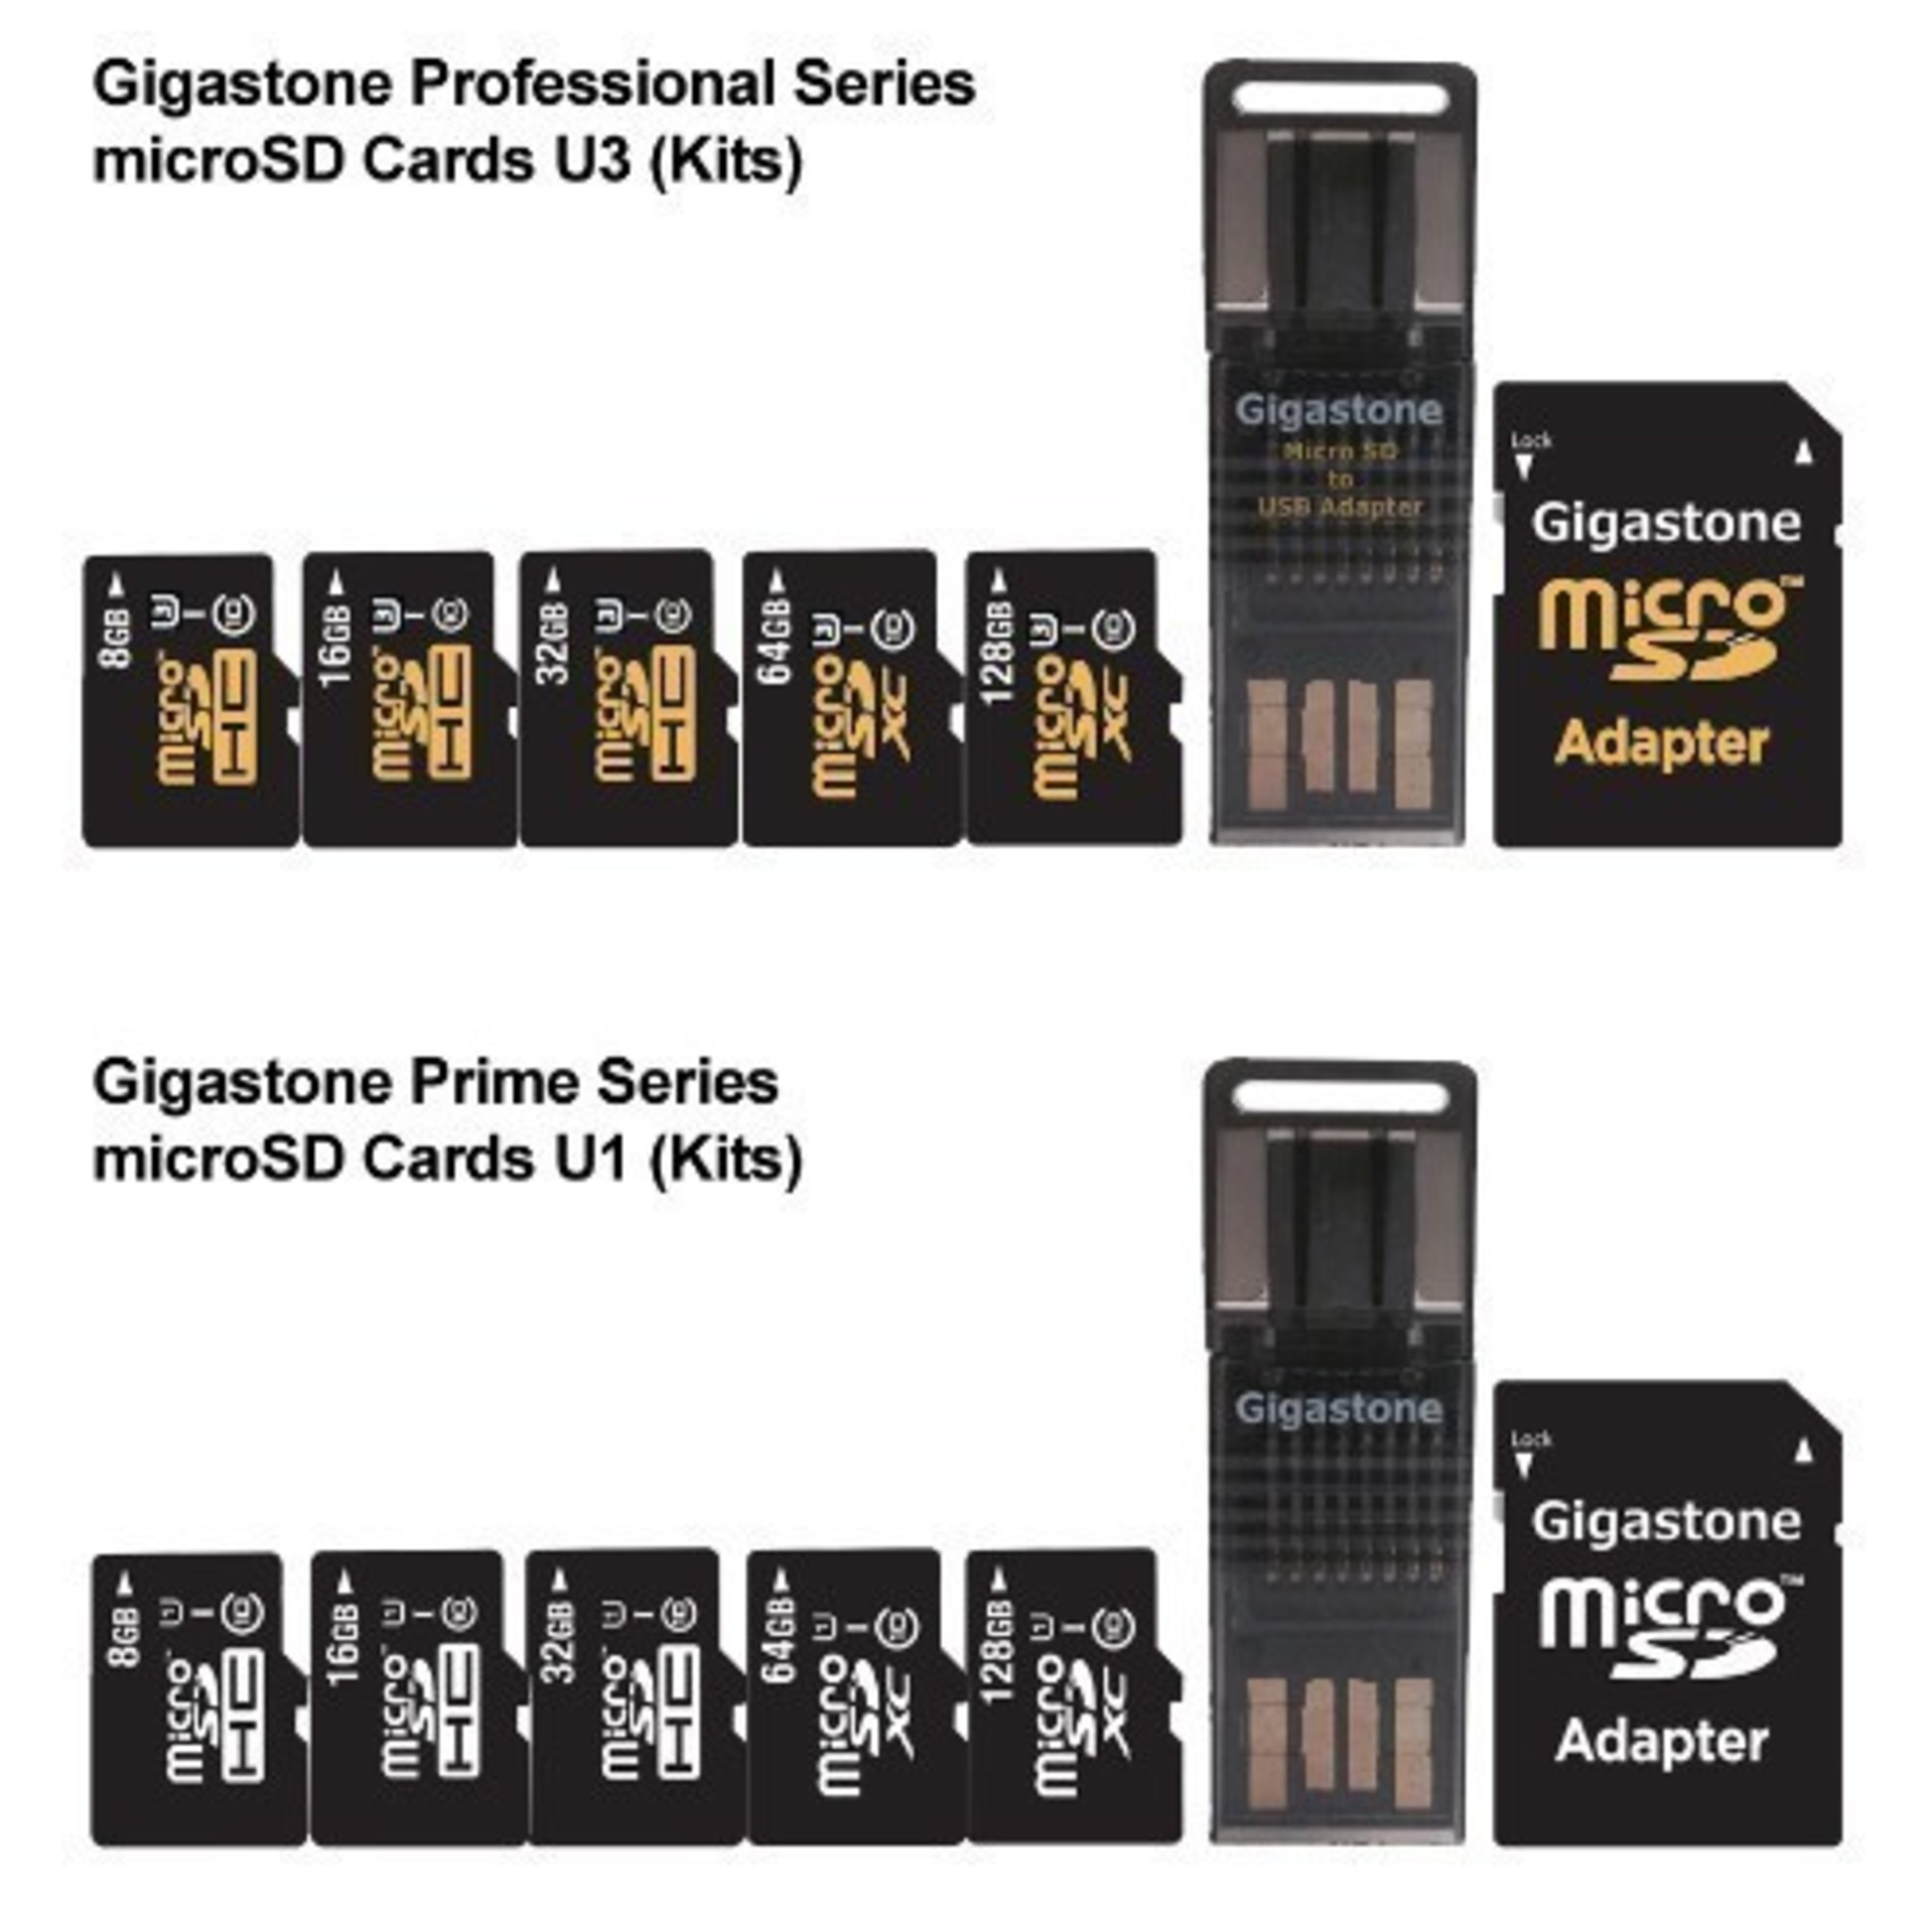 Gigastone Bundles All Micro SD Cards With Complimentary Adapters to Focus on Customer Needs